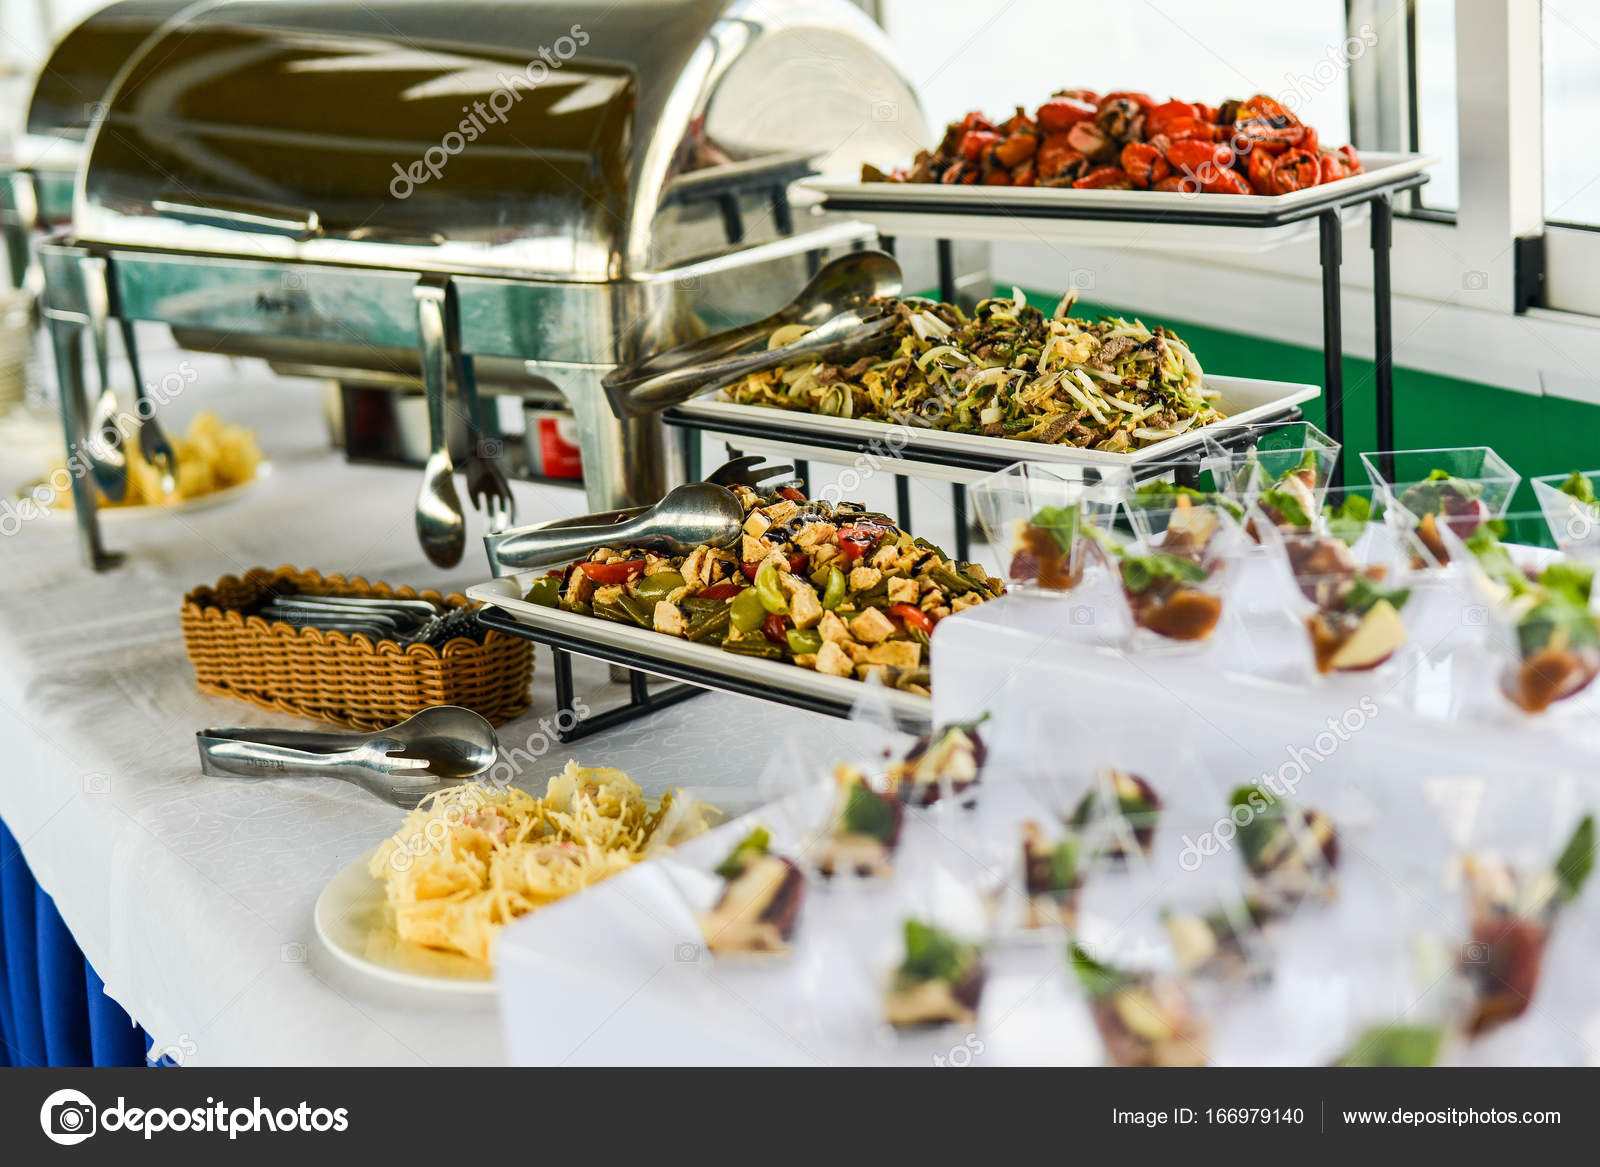 Buffet table Canape sandwiches snacks holiday table sliced glasses celebration new year christmas fourchette catering table setting u2014 Photo by Alex.S. & buffet table Canape sandwiches snacks holiday table sliced ...